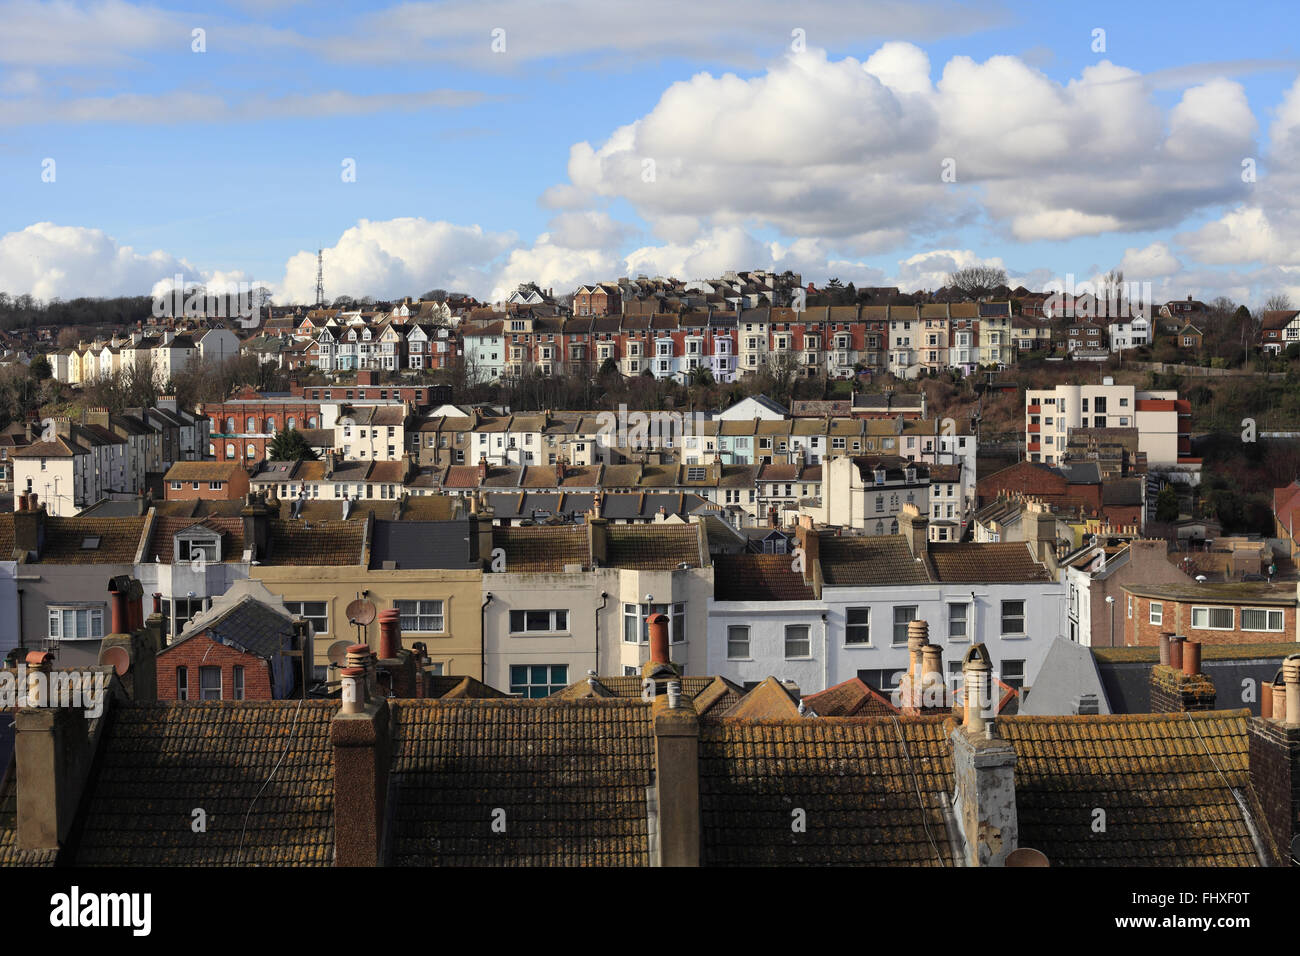 Hastings cityscape looking to the west of the town with Queens Road on the foreground, East Sussex, UK - Stock Image